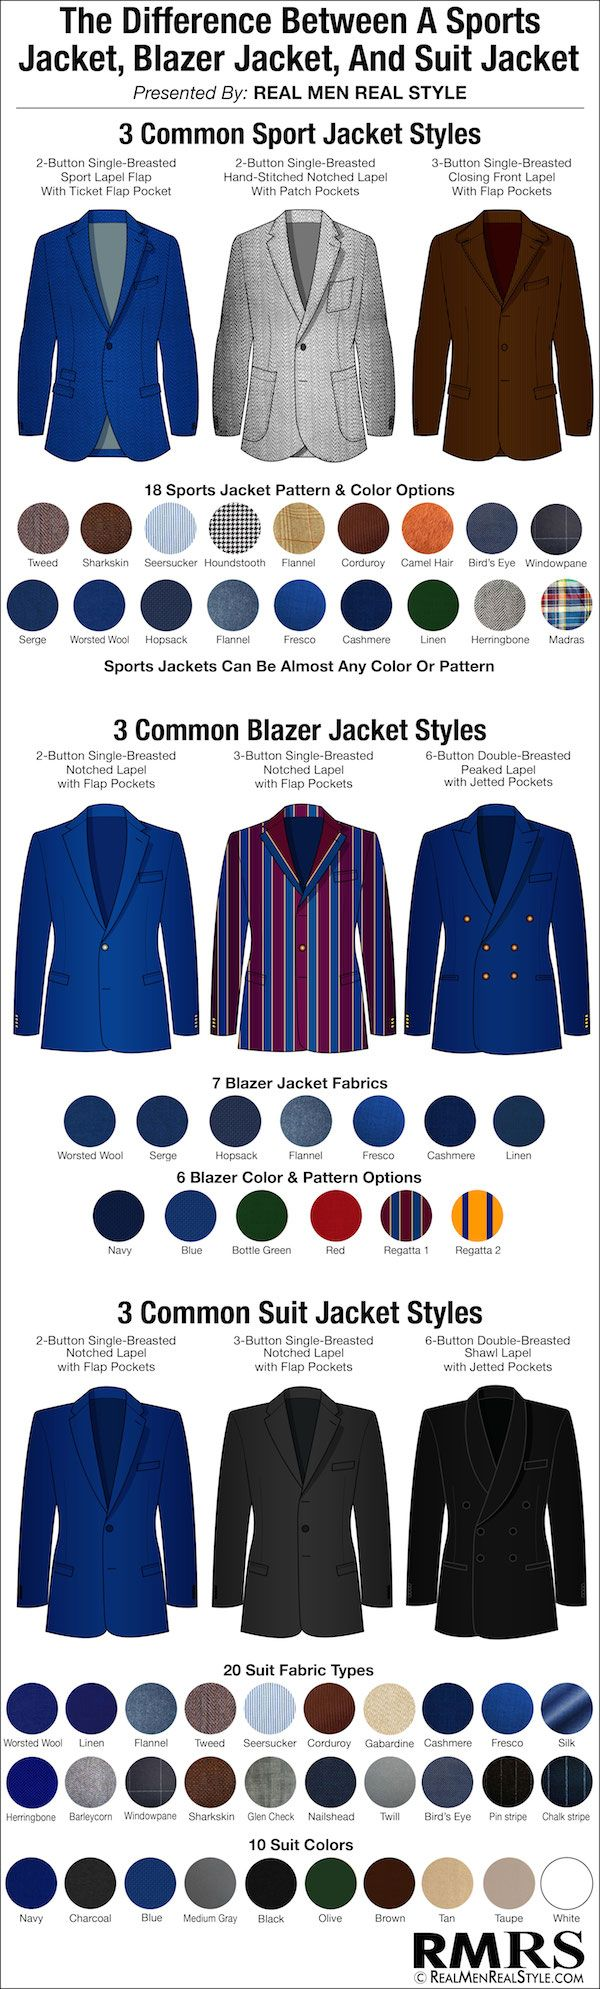 Differences Between a Suit Jacket, Blazer Jacket and Sports Jacket | Infographic (via @antoniocenteno)